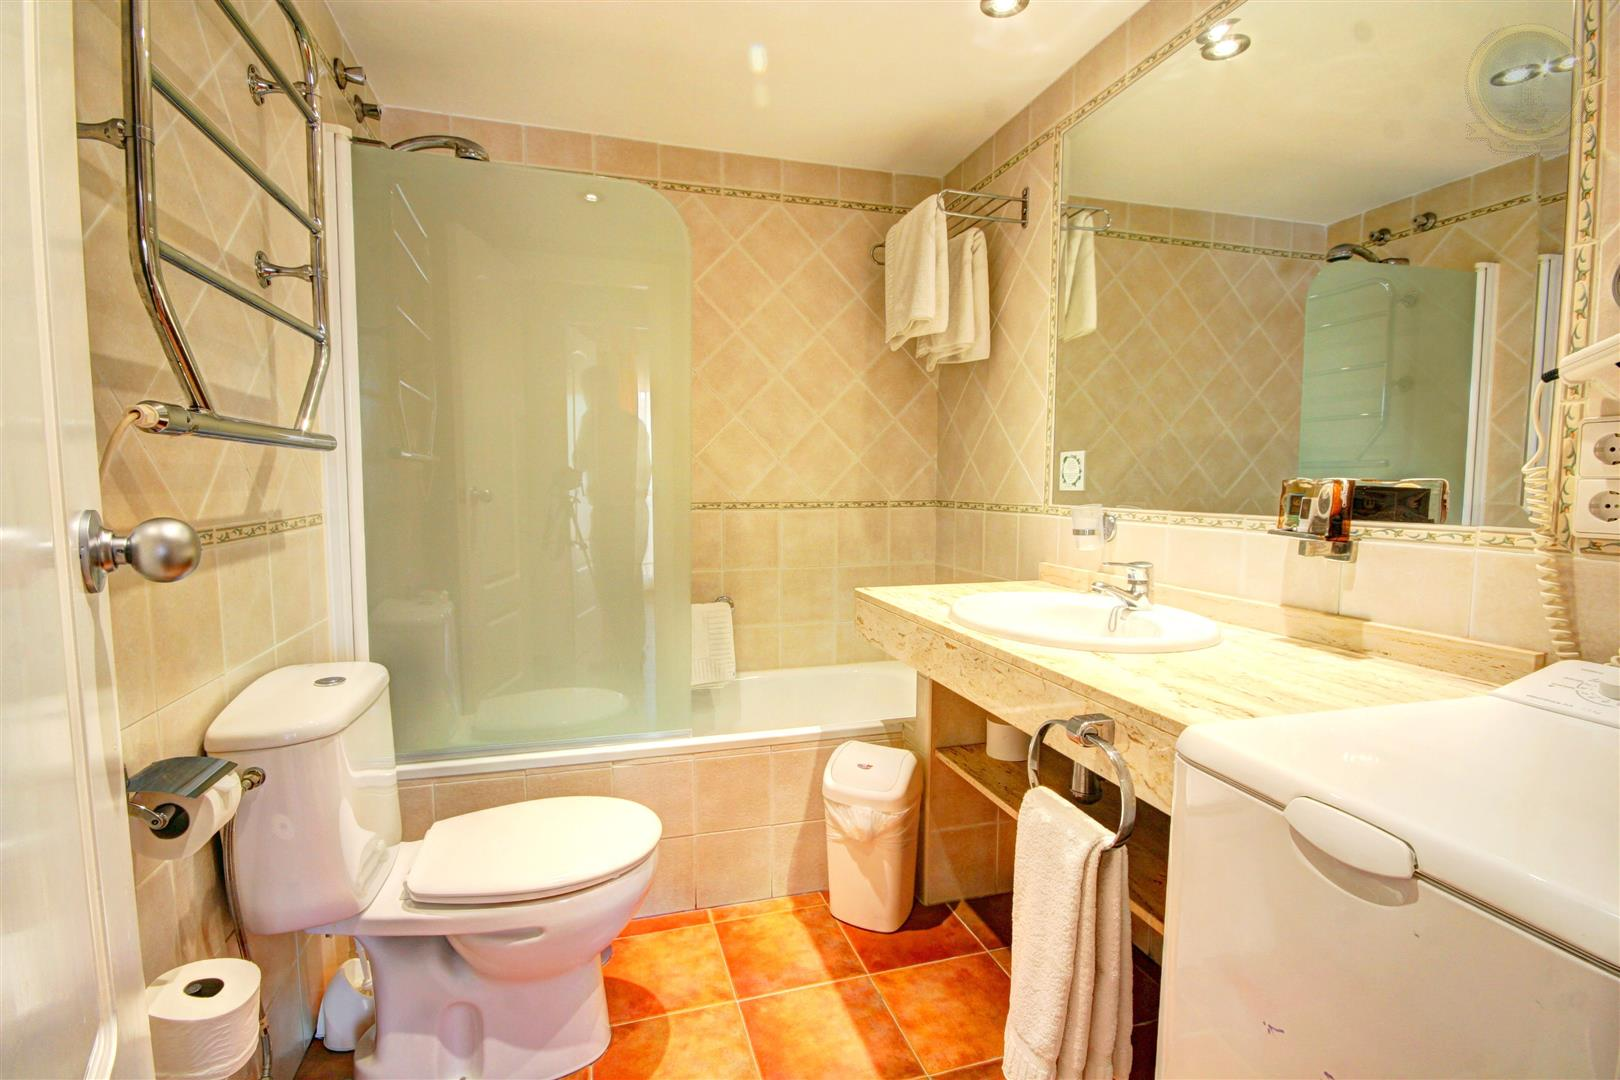 apartment for rent in Benal Beach Benalmadena - bathroom